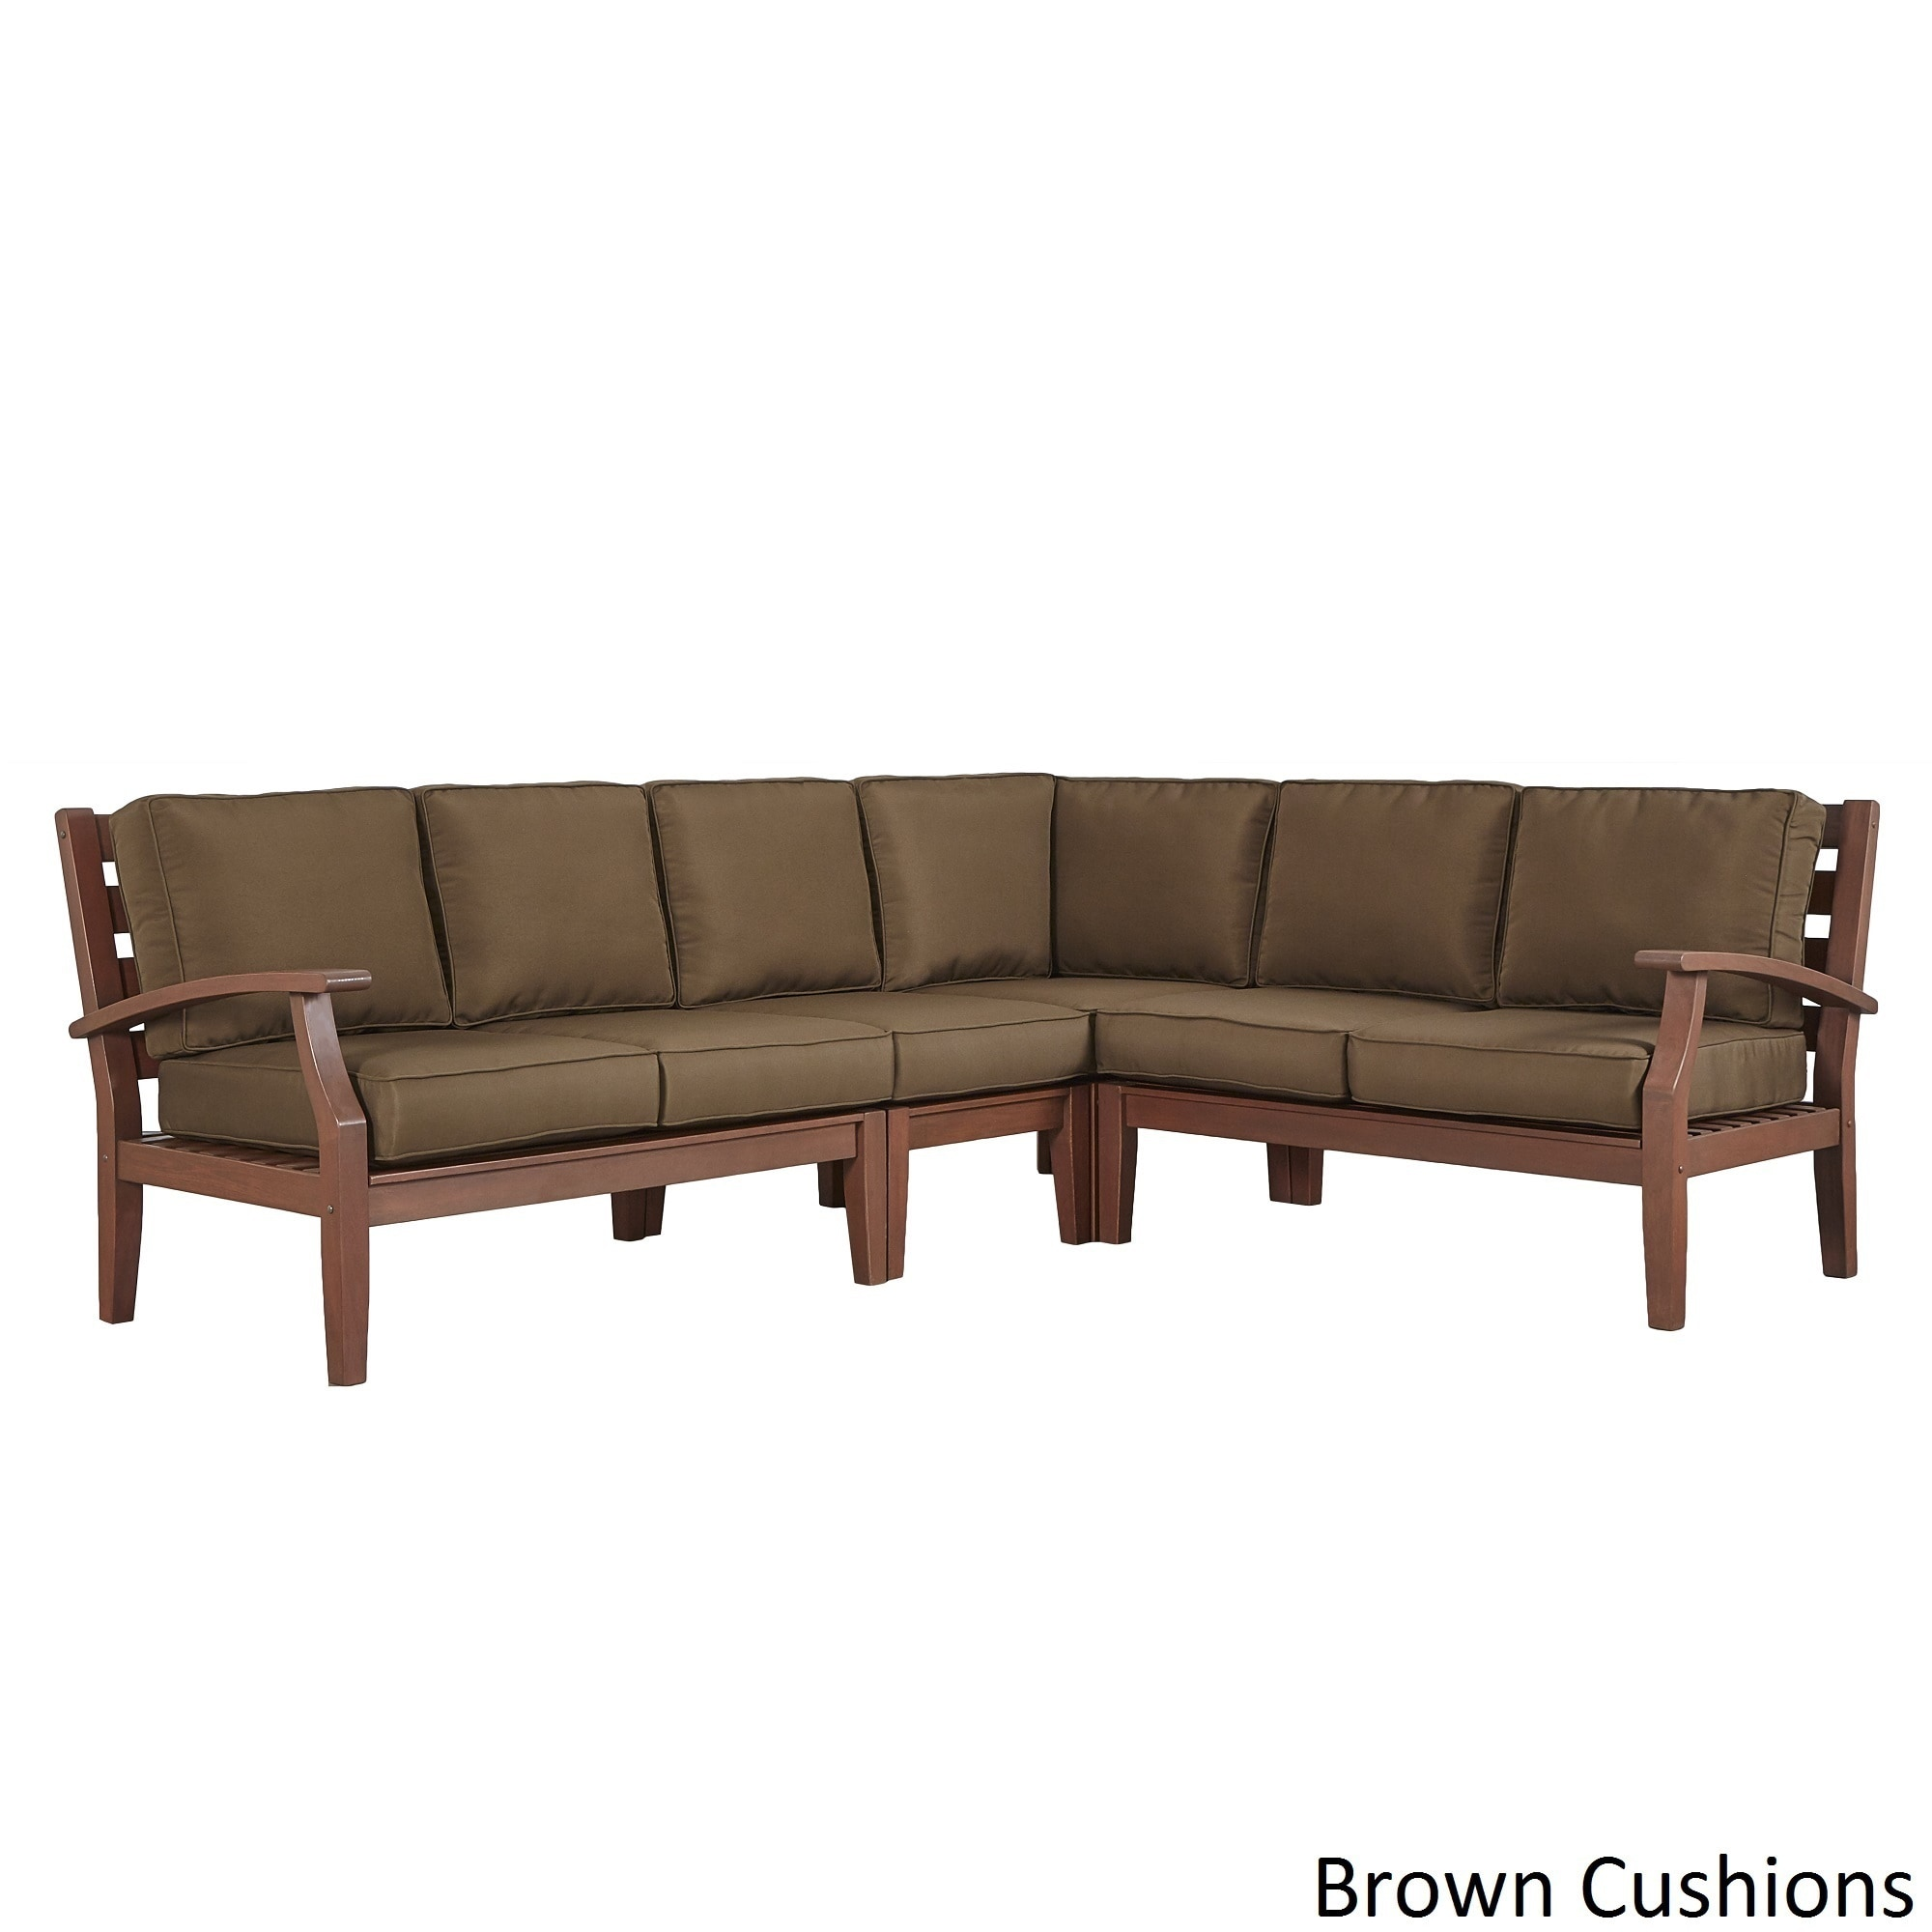 Ordinaire Shop Yasawa Modern Brown Outdoor Cushioned Wood Sectional INSPIRE Q Oasis    On Sale   Free Shipping Today   Overstock.com   13059191